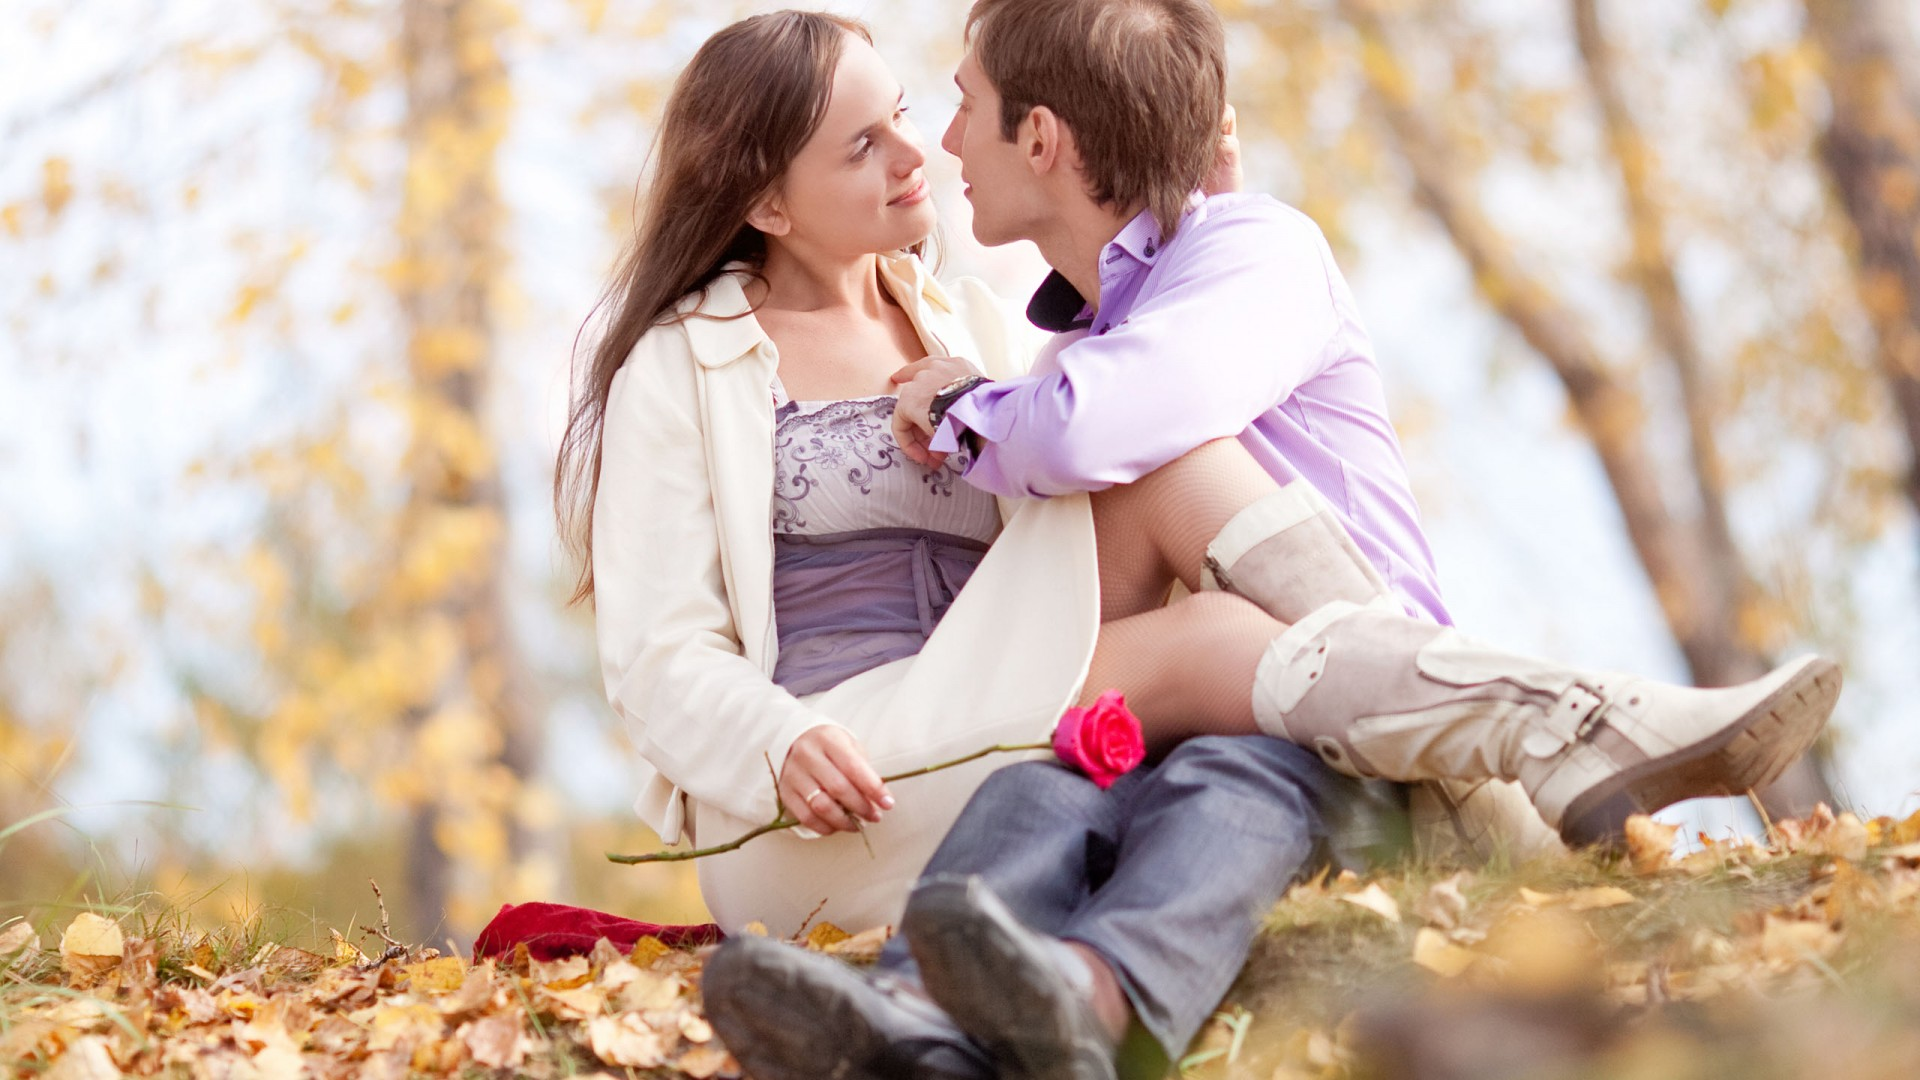 Romantic Love Kiss Wallpapers